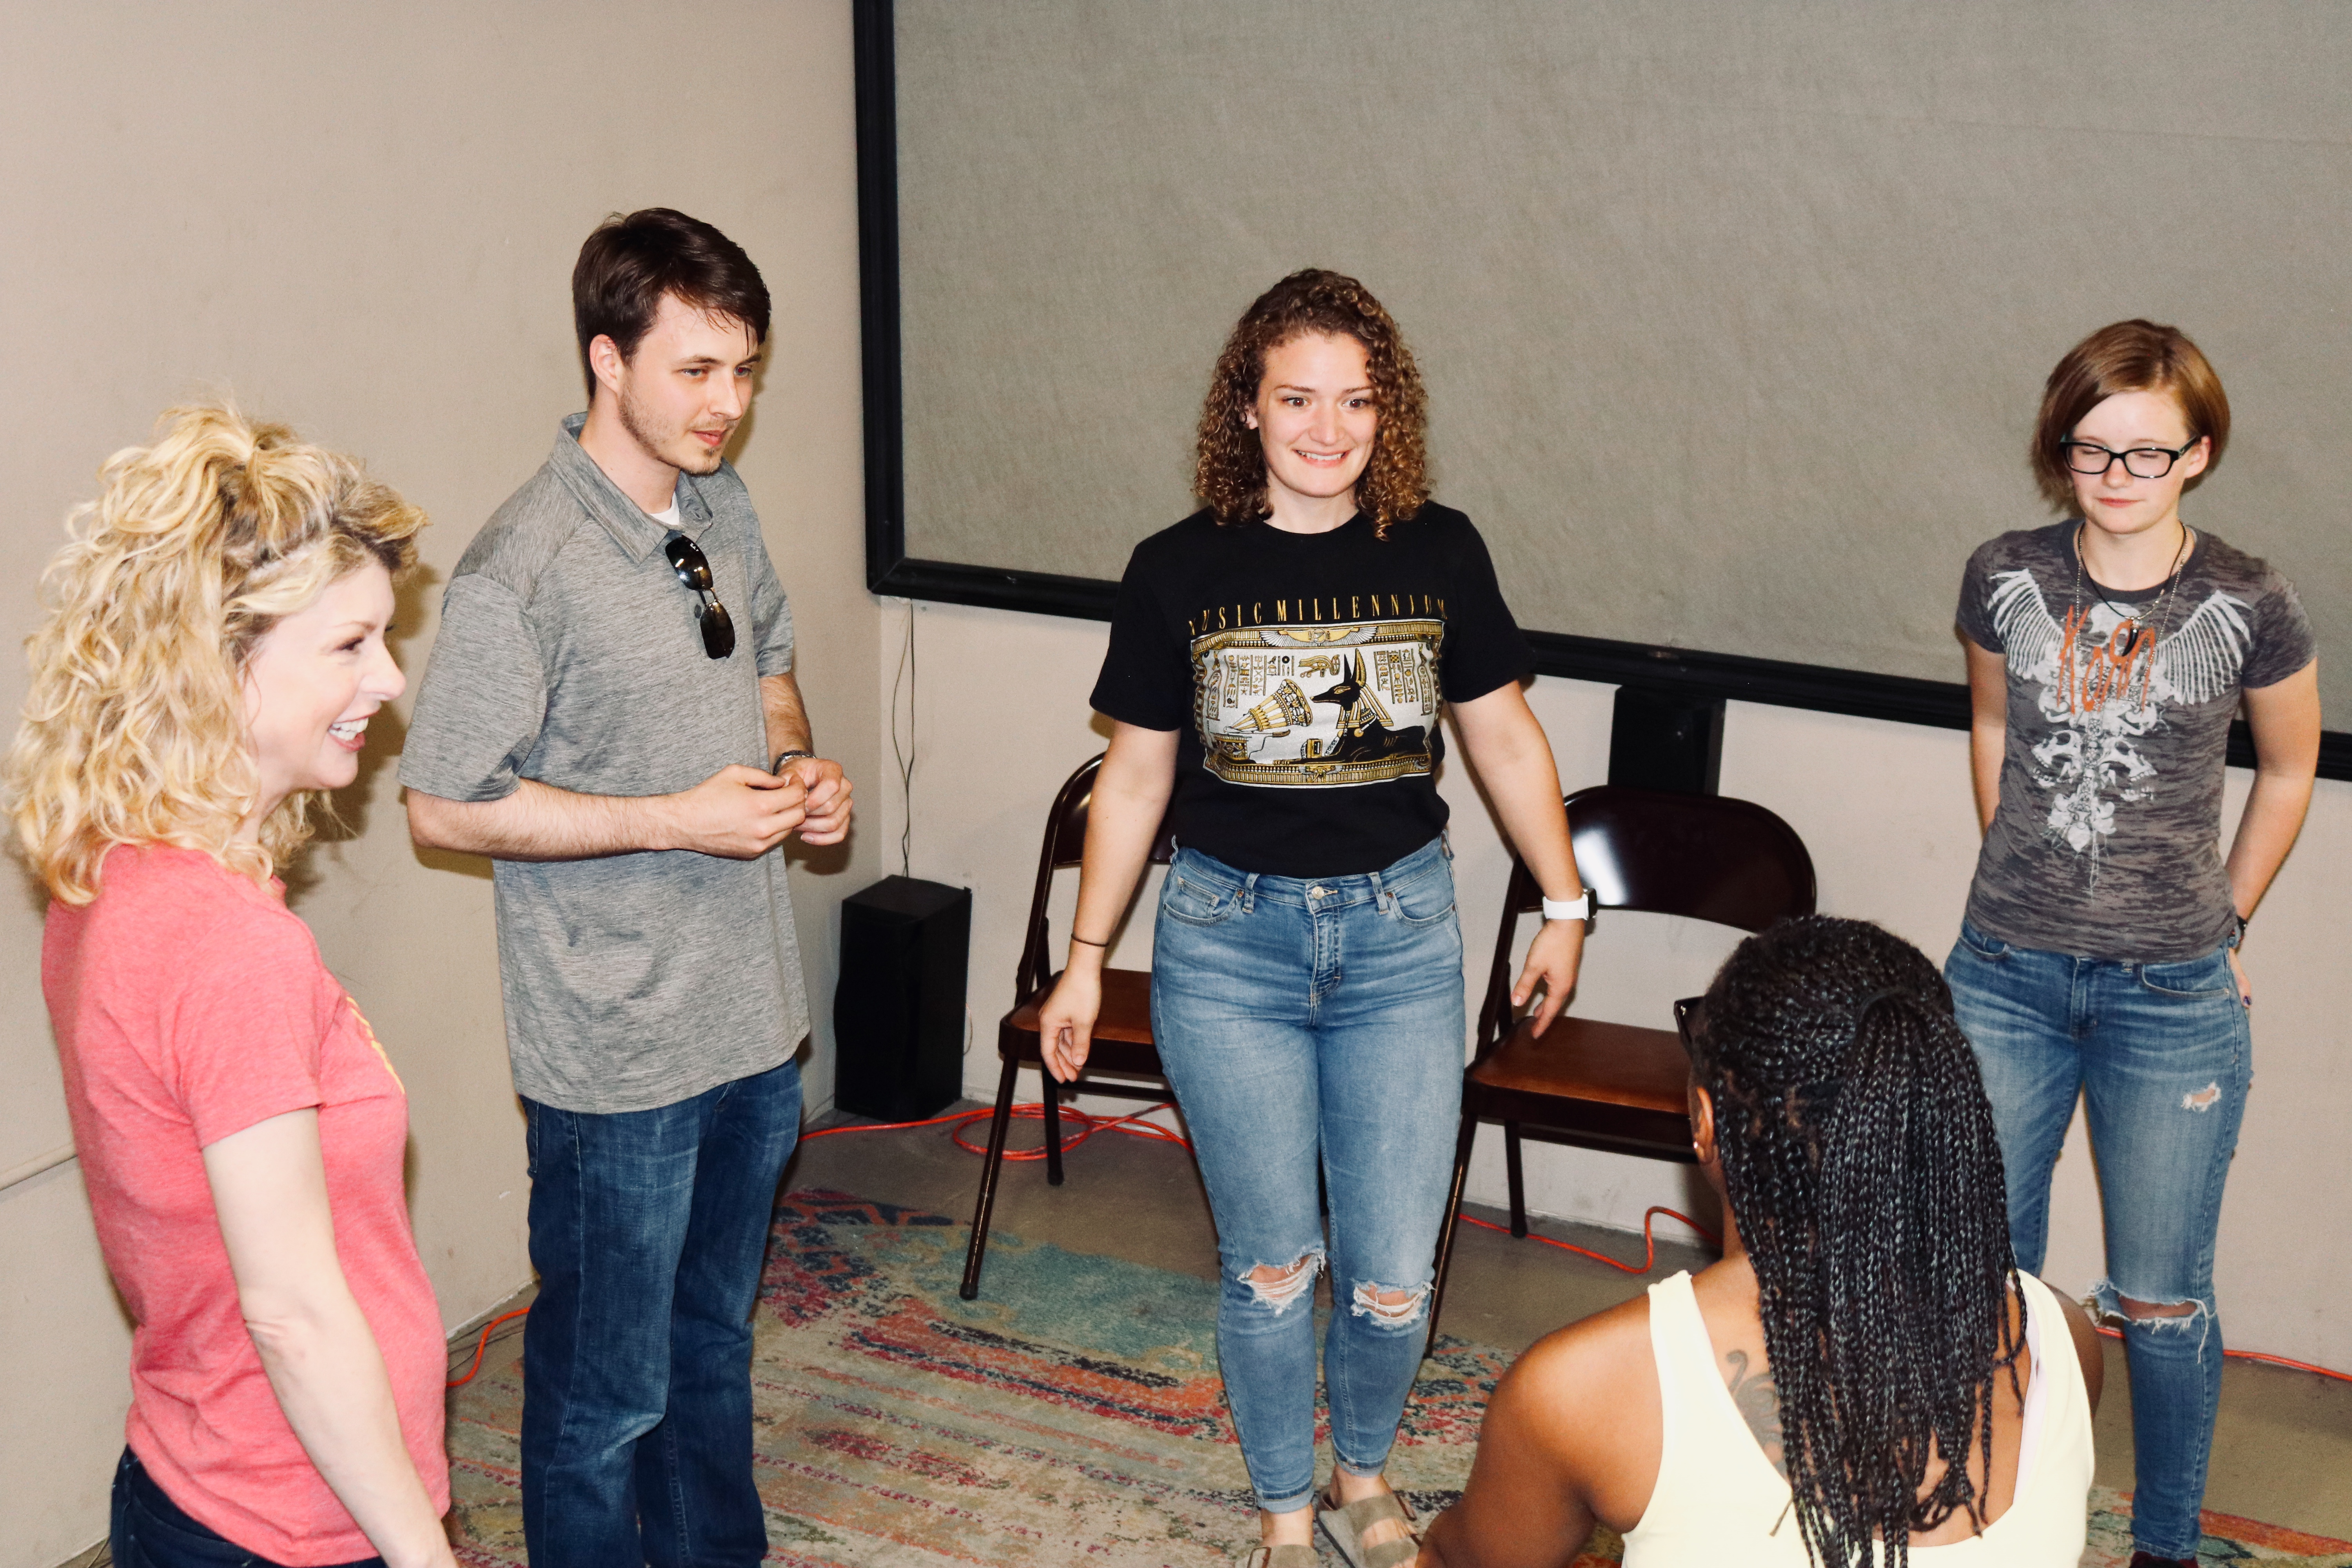 Intro to acting class warm-ups